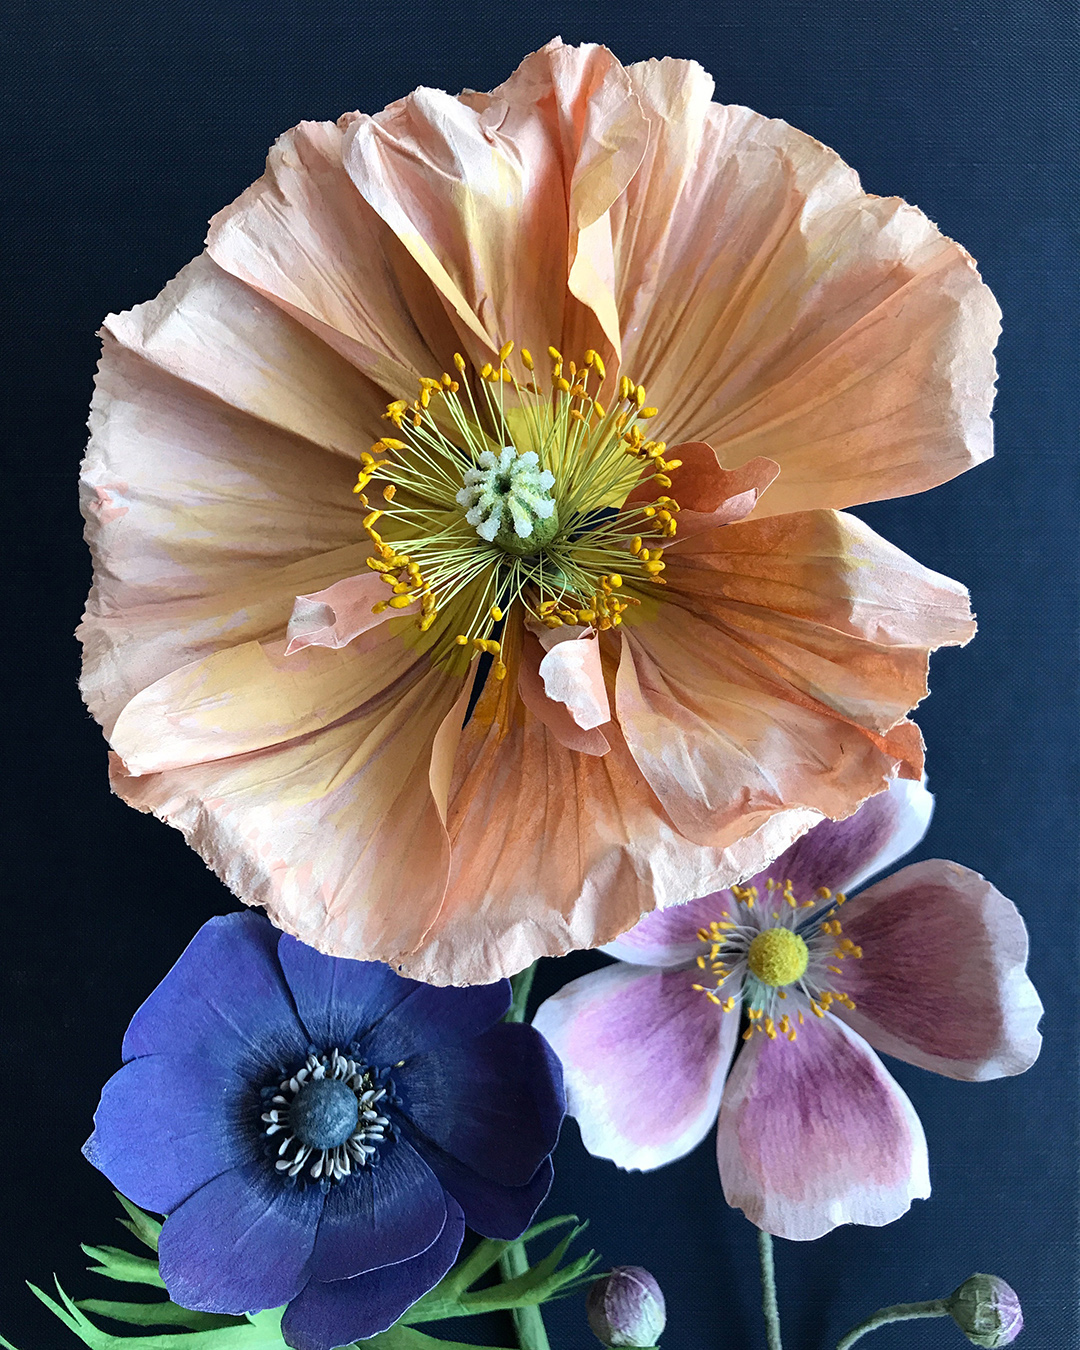 This Popular Instagram Account Has the Prettiest Paper Flowers